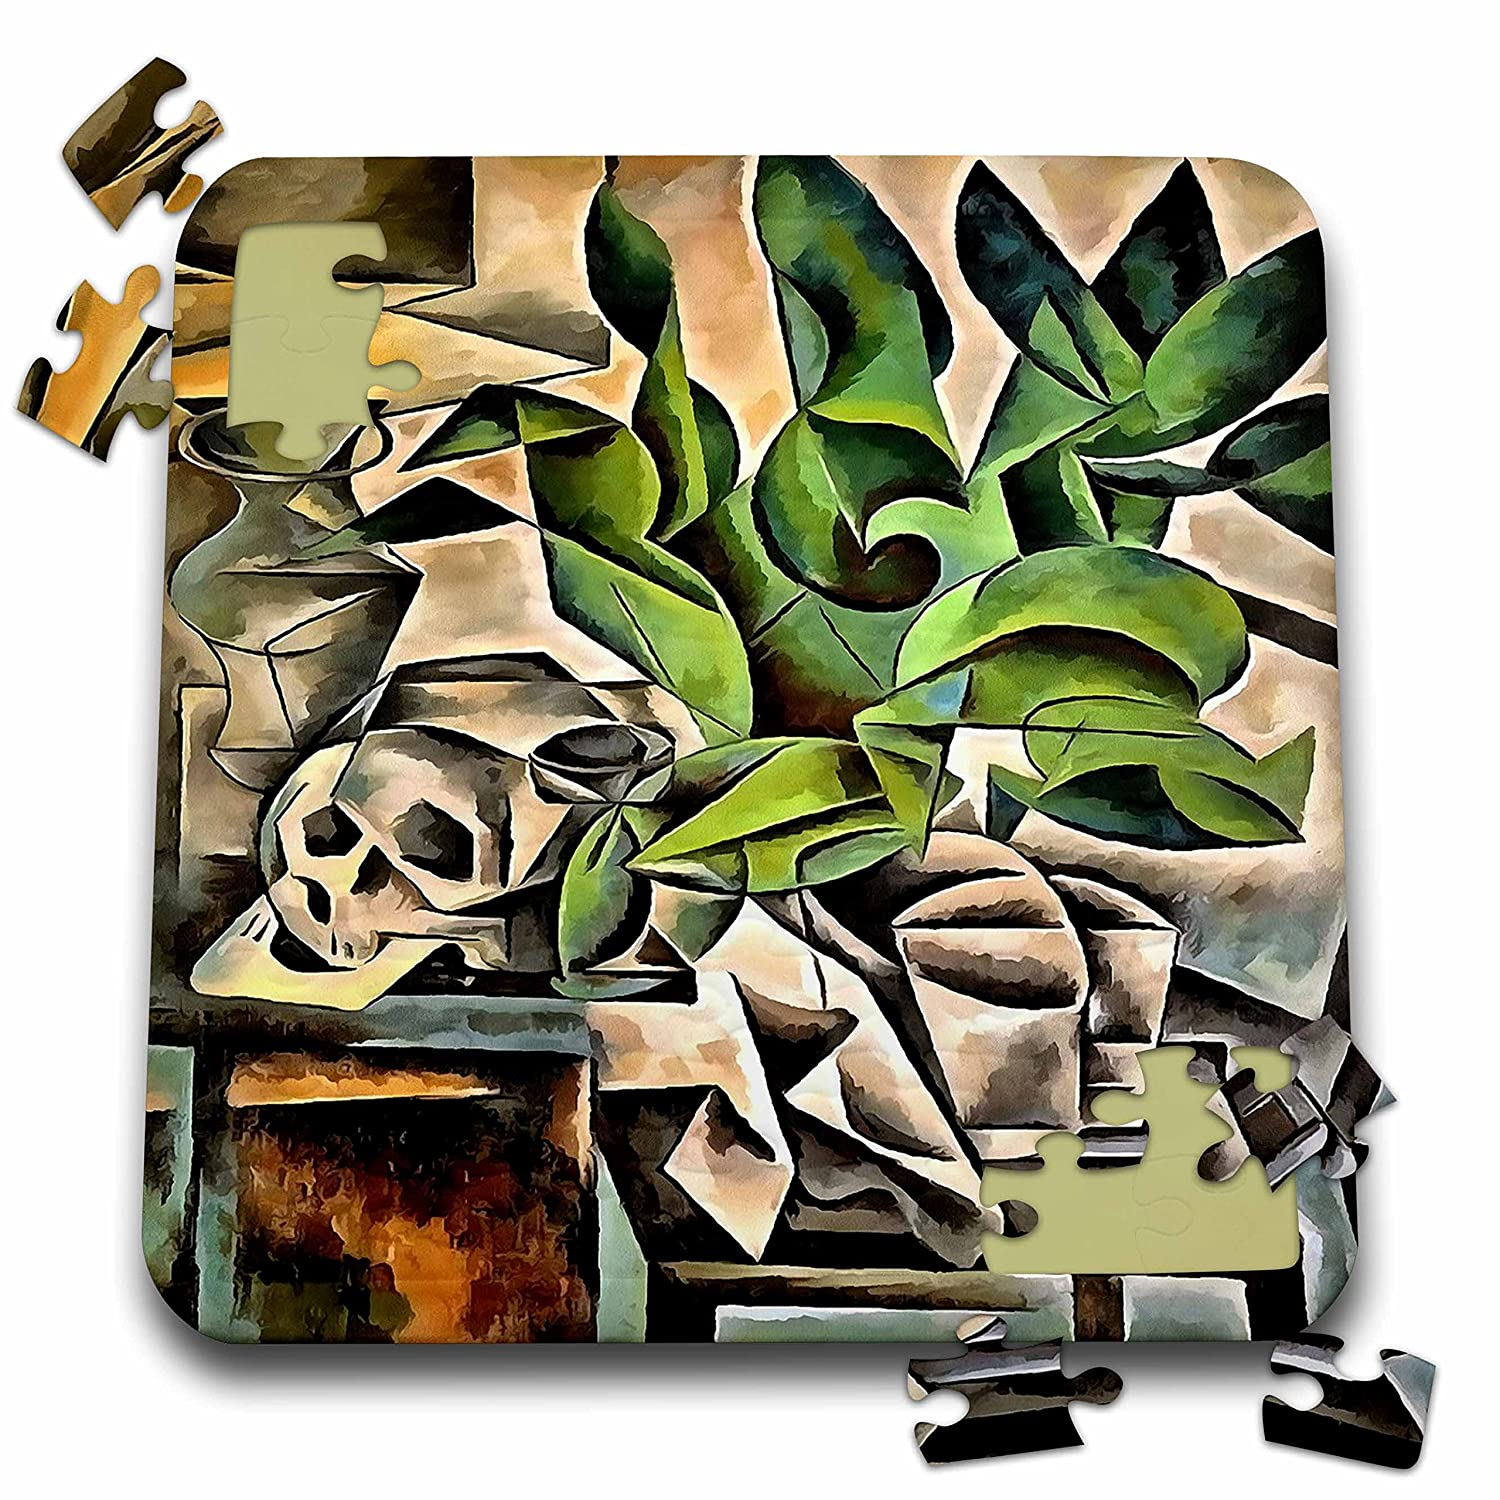 Taiche - Acrylic Painting - Skulls - Still Life with Skull After Bohumil Kubista - 10x10 Inch Puzzle (pzl_245567_2)